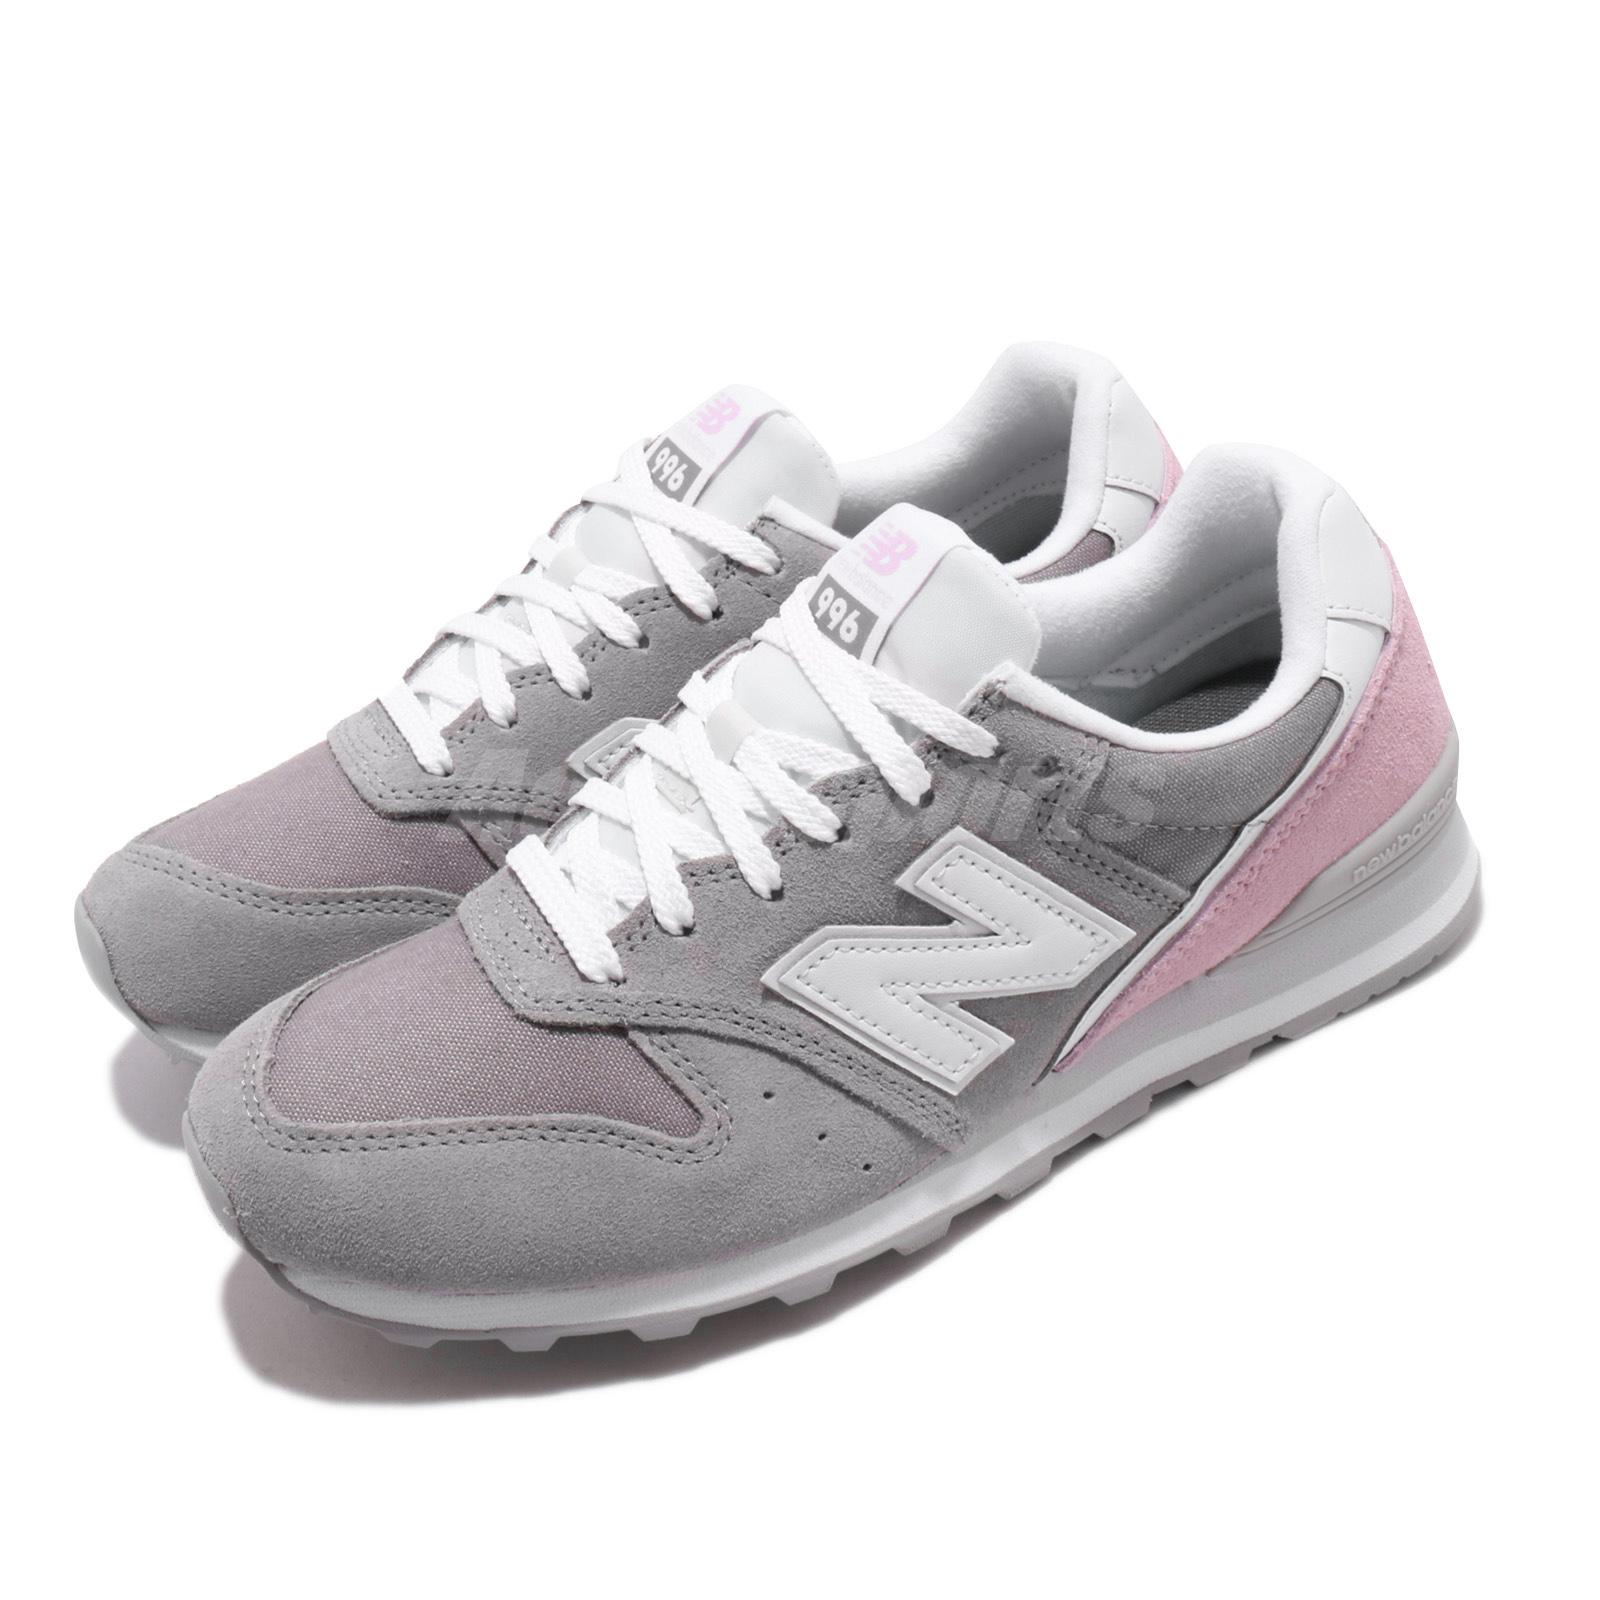 New Balance Wl996 D Wide Grey Suede Pink Womens Retro Running Shoes Nb Wl996bcd Ebay